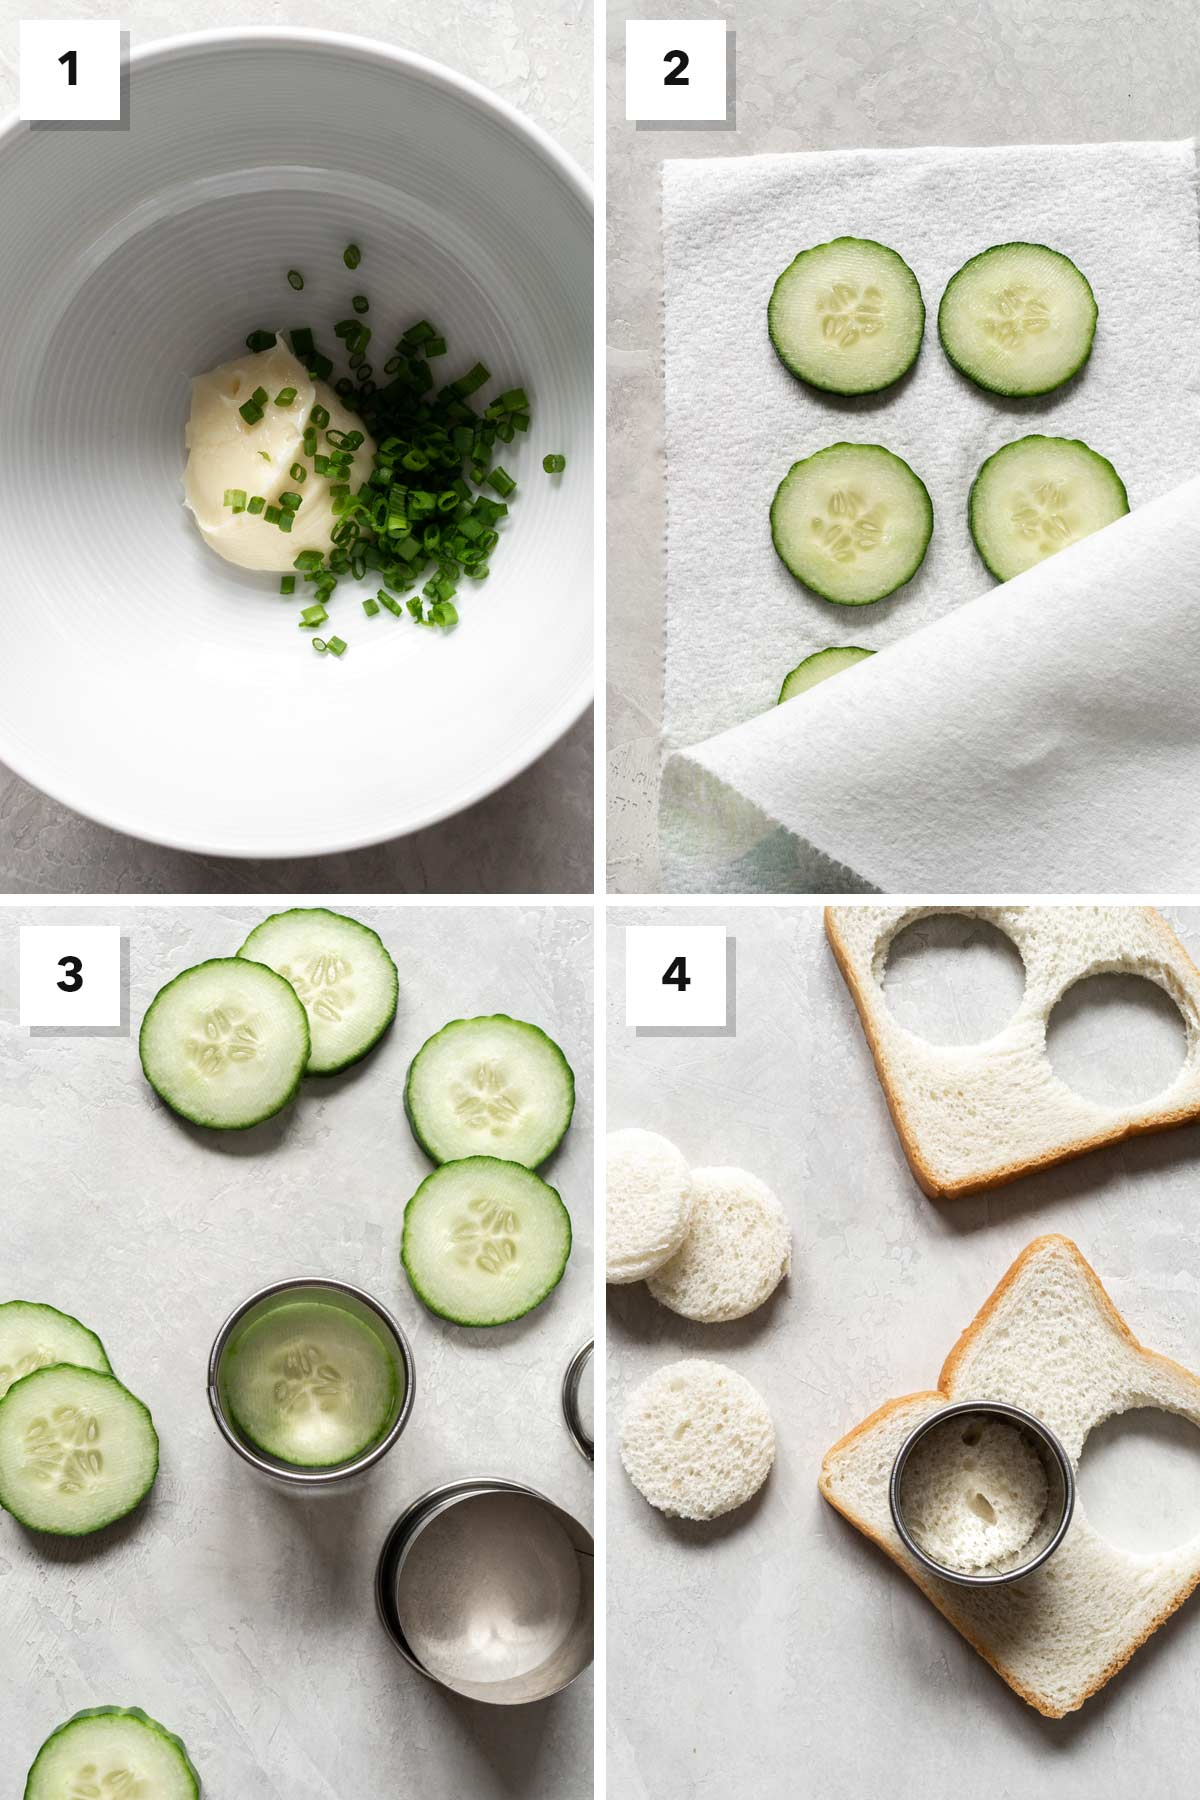 Four photo collage showing steps to make cucumber tea sandwiches.